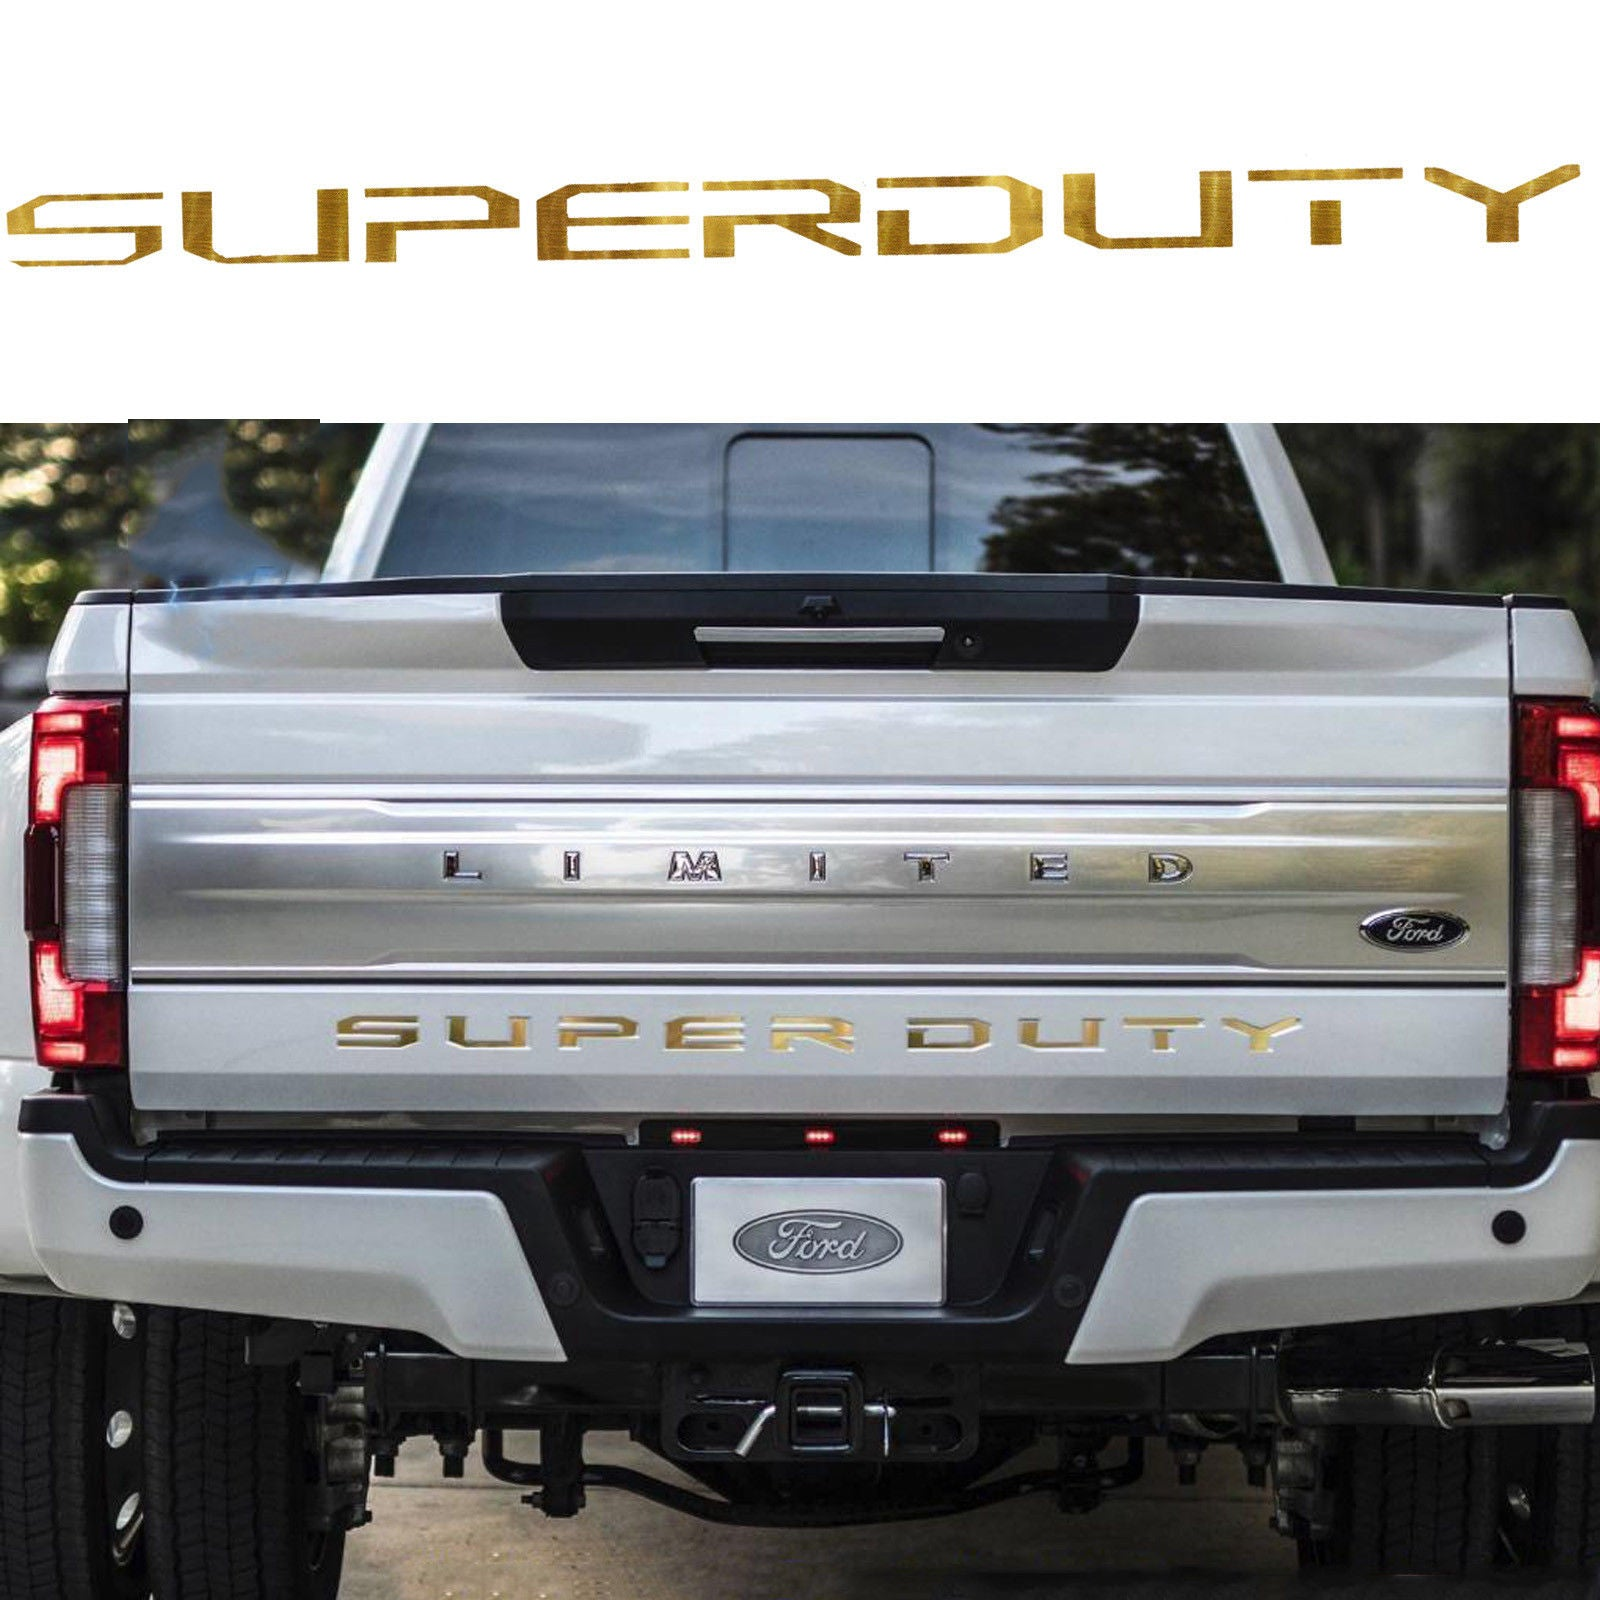 Superduty Letters Decal Emblem Tailgate Sticker For 2017